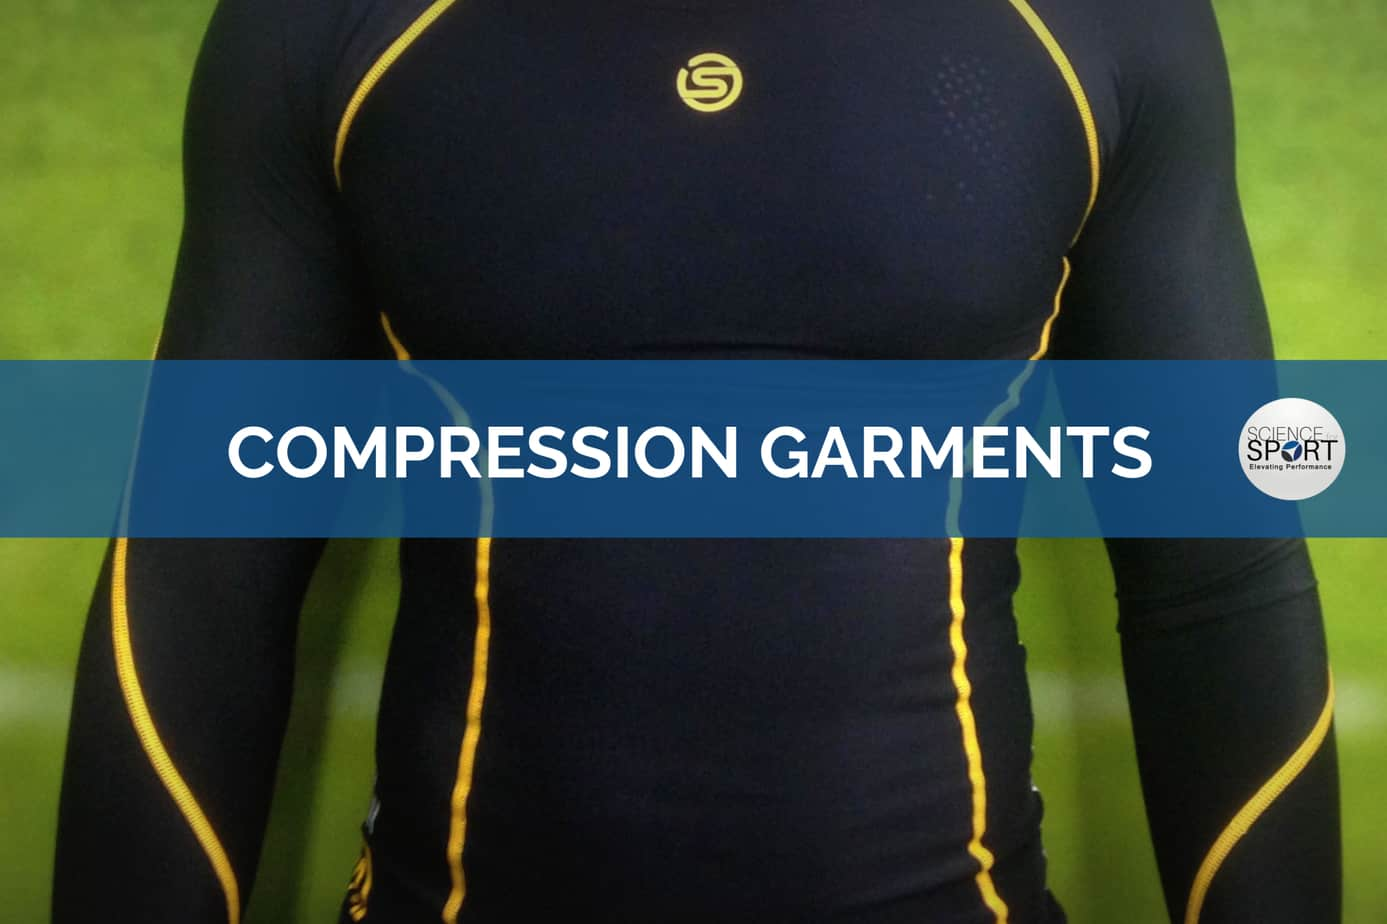 Compression garments- Science For Sport